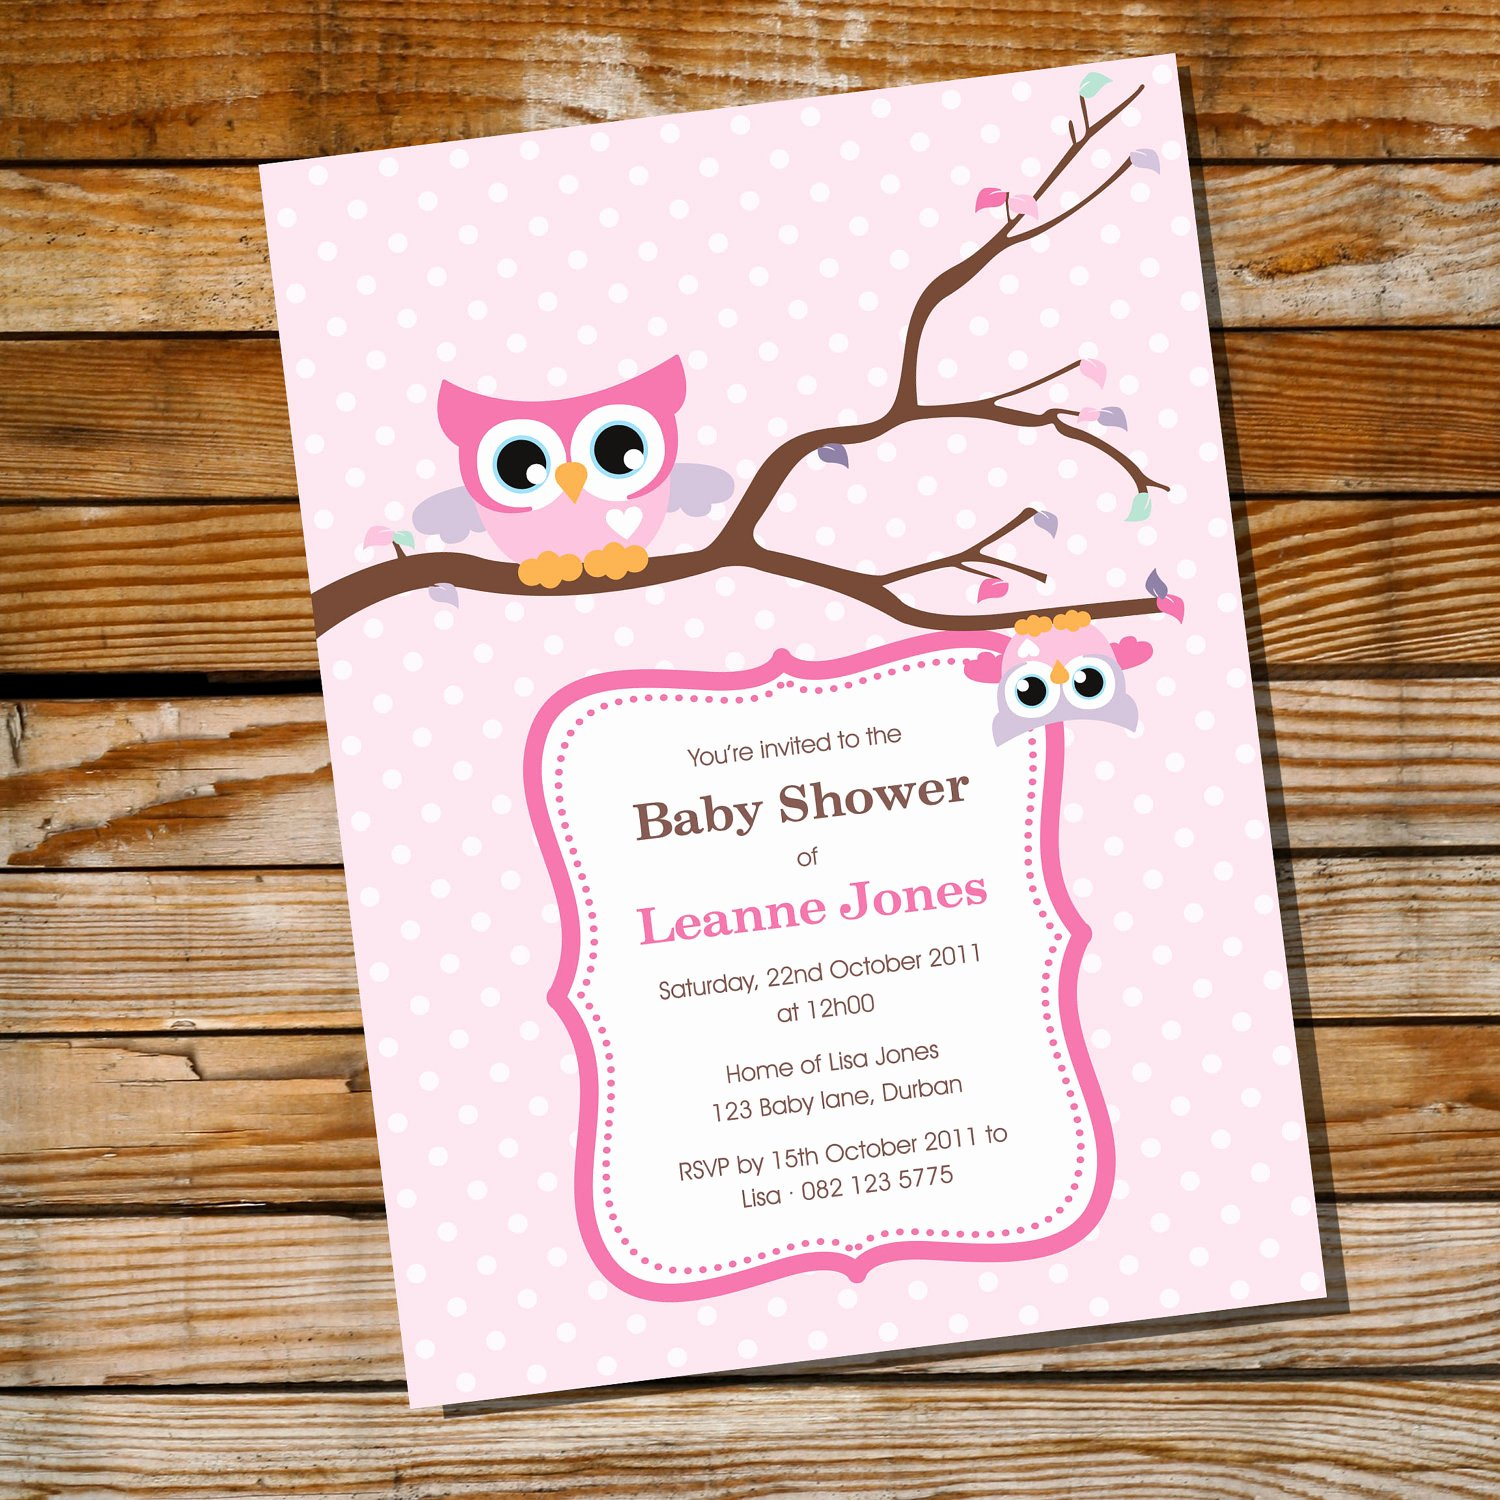 Owl Baby Shower Invitations Templates Luxury Cute Baby Owl Invitation for A Girl Baby Shower Instantly